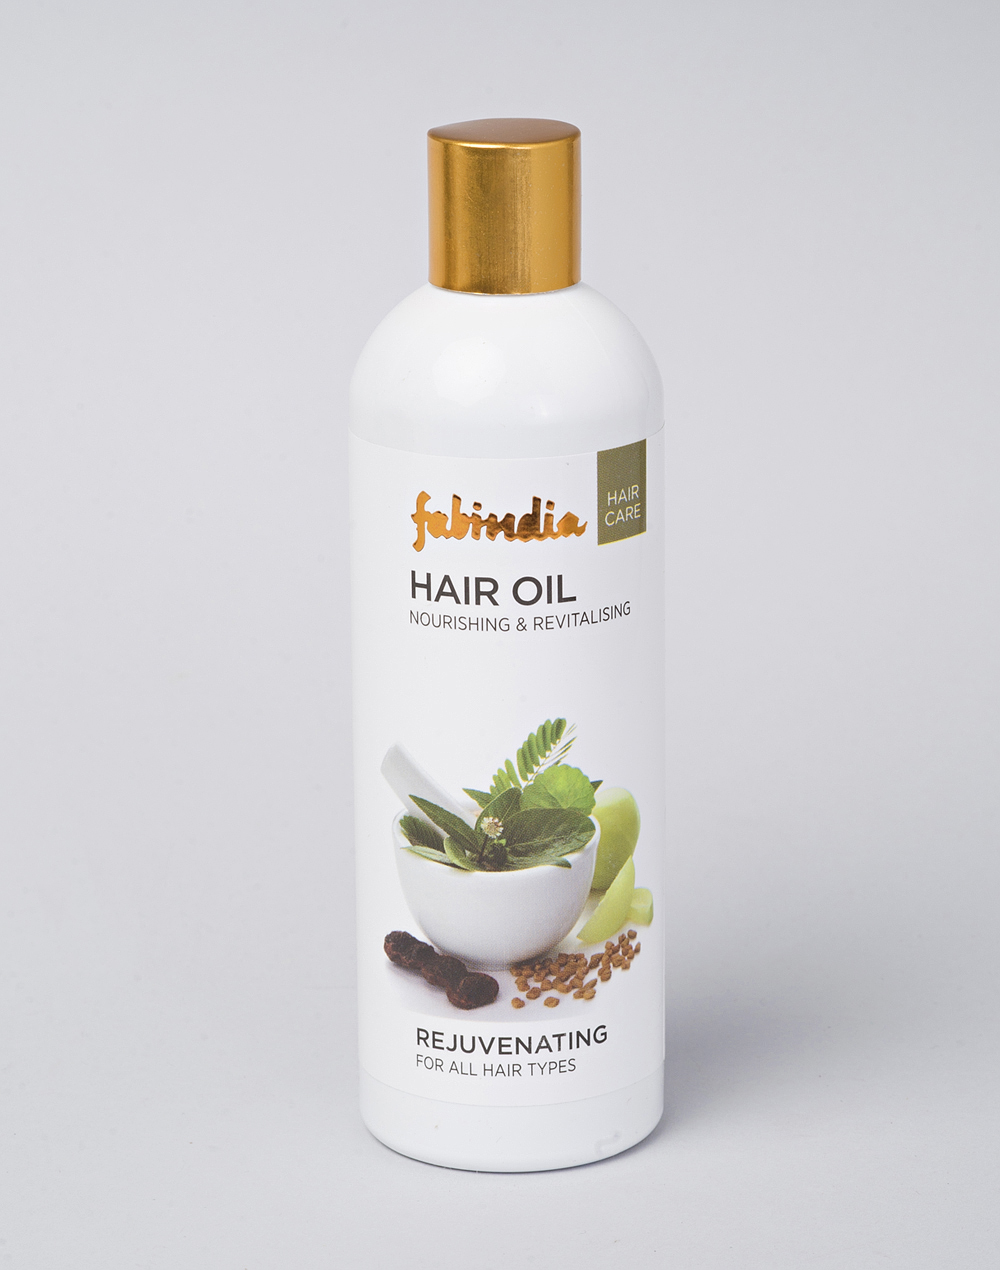 Fabindia Herbal Rejuvenating Hair Oil